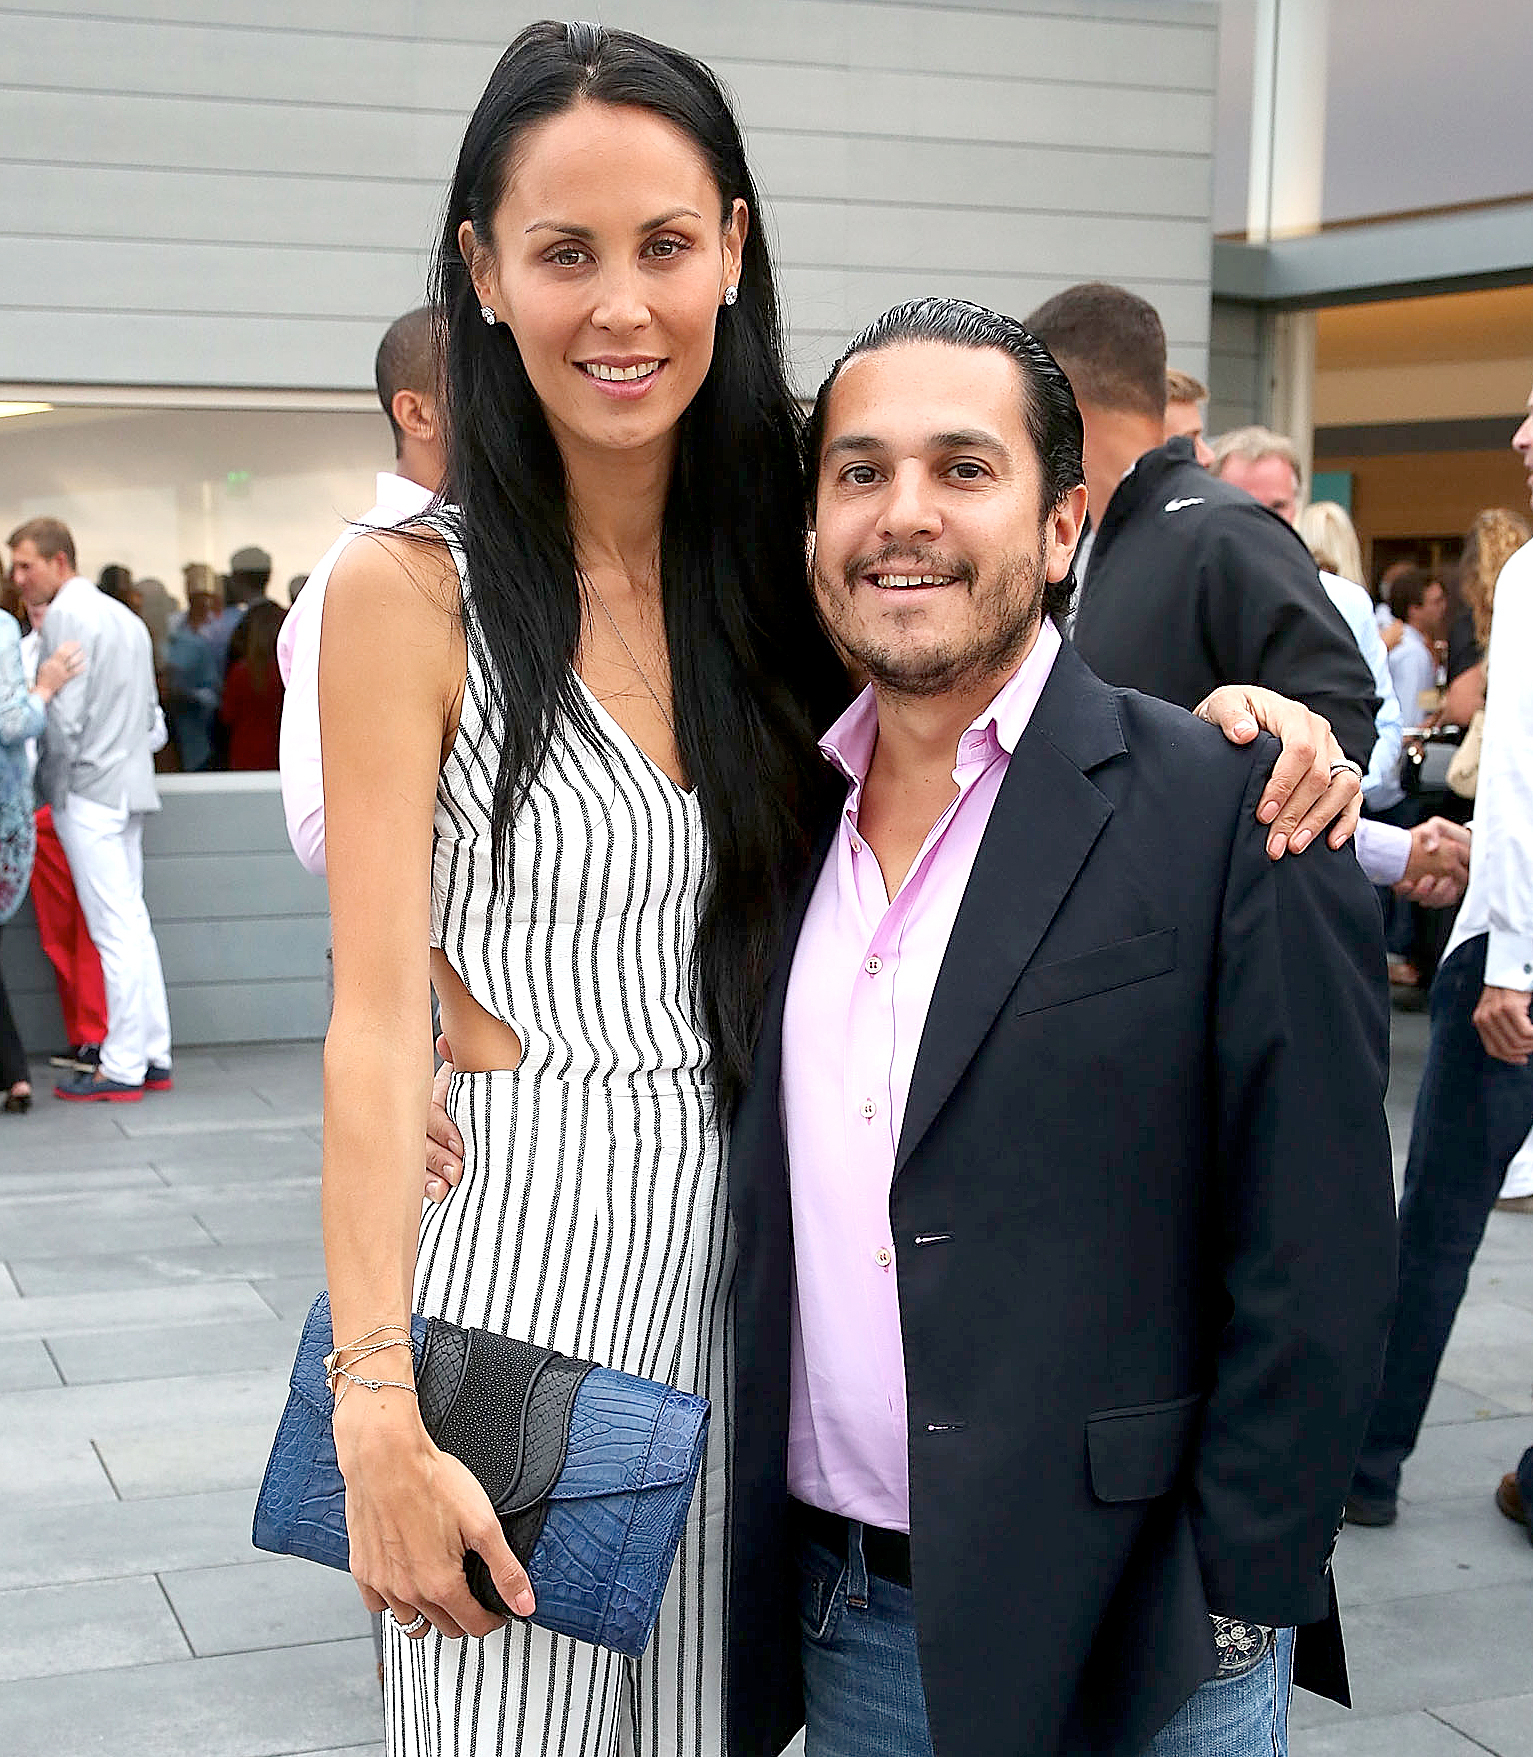 Julianne and Michael Wainstein attend the USTA Serves 2nd annual Pro-Am reception , sponsored by Sothebys, and BMW at The Bridge Golf Club on August 22, 2013 in Sag Harbor, New York.